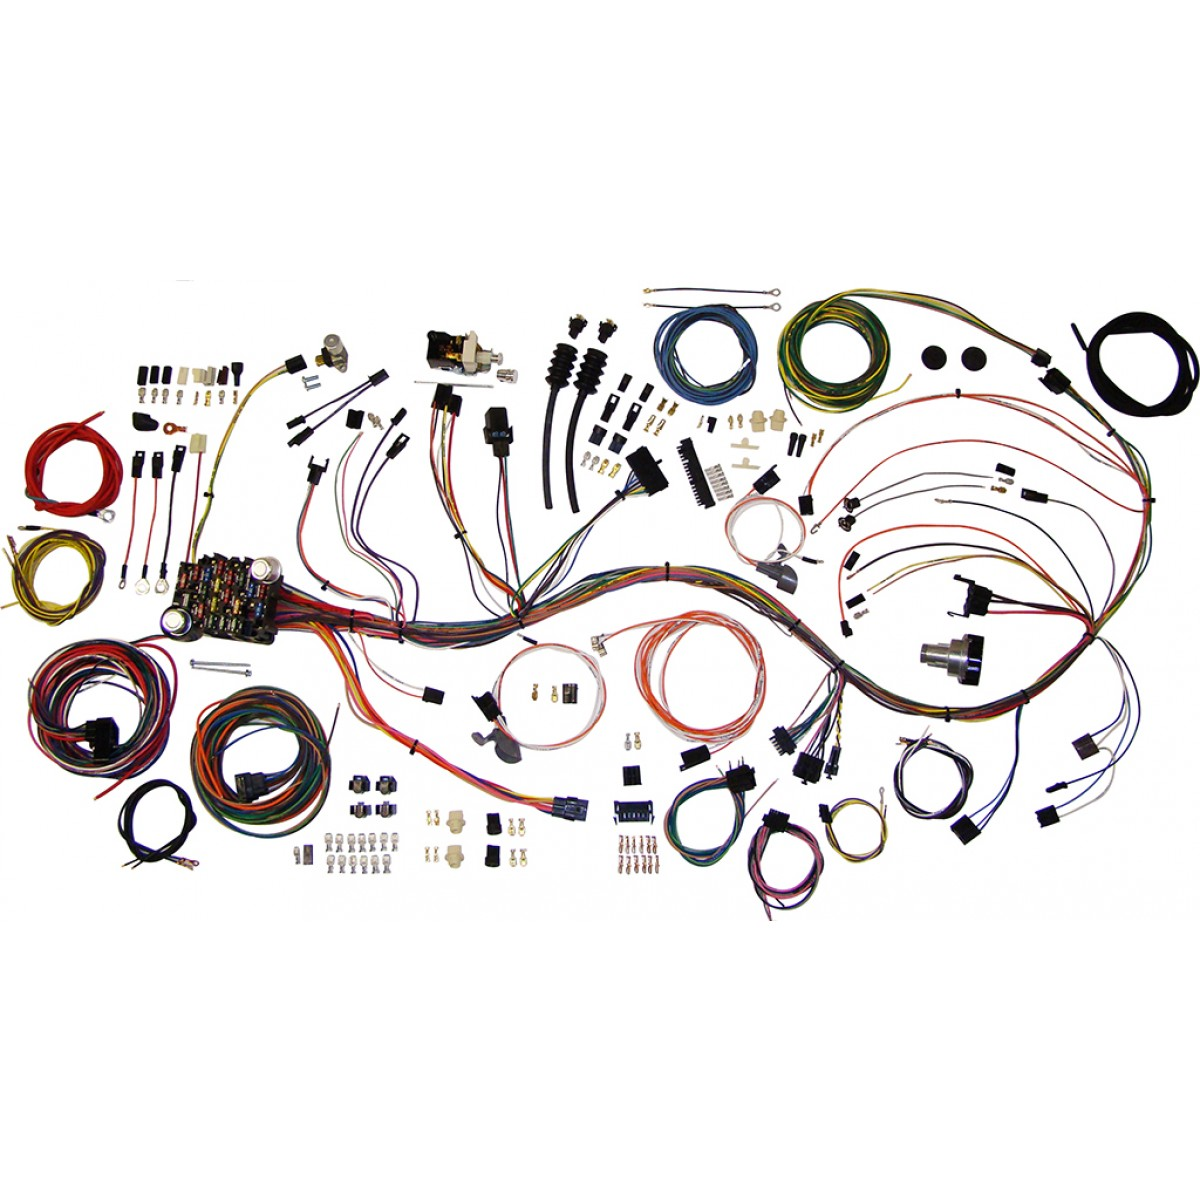 hight resolution of complete wiring harness kit 1969 1972 chevy truck part 510089